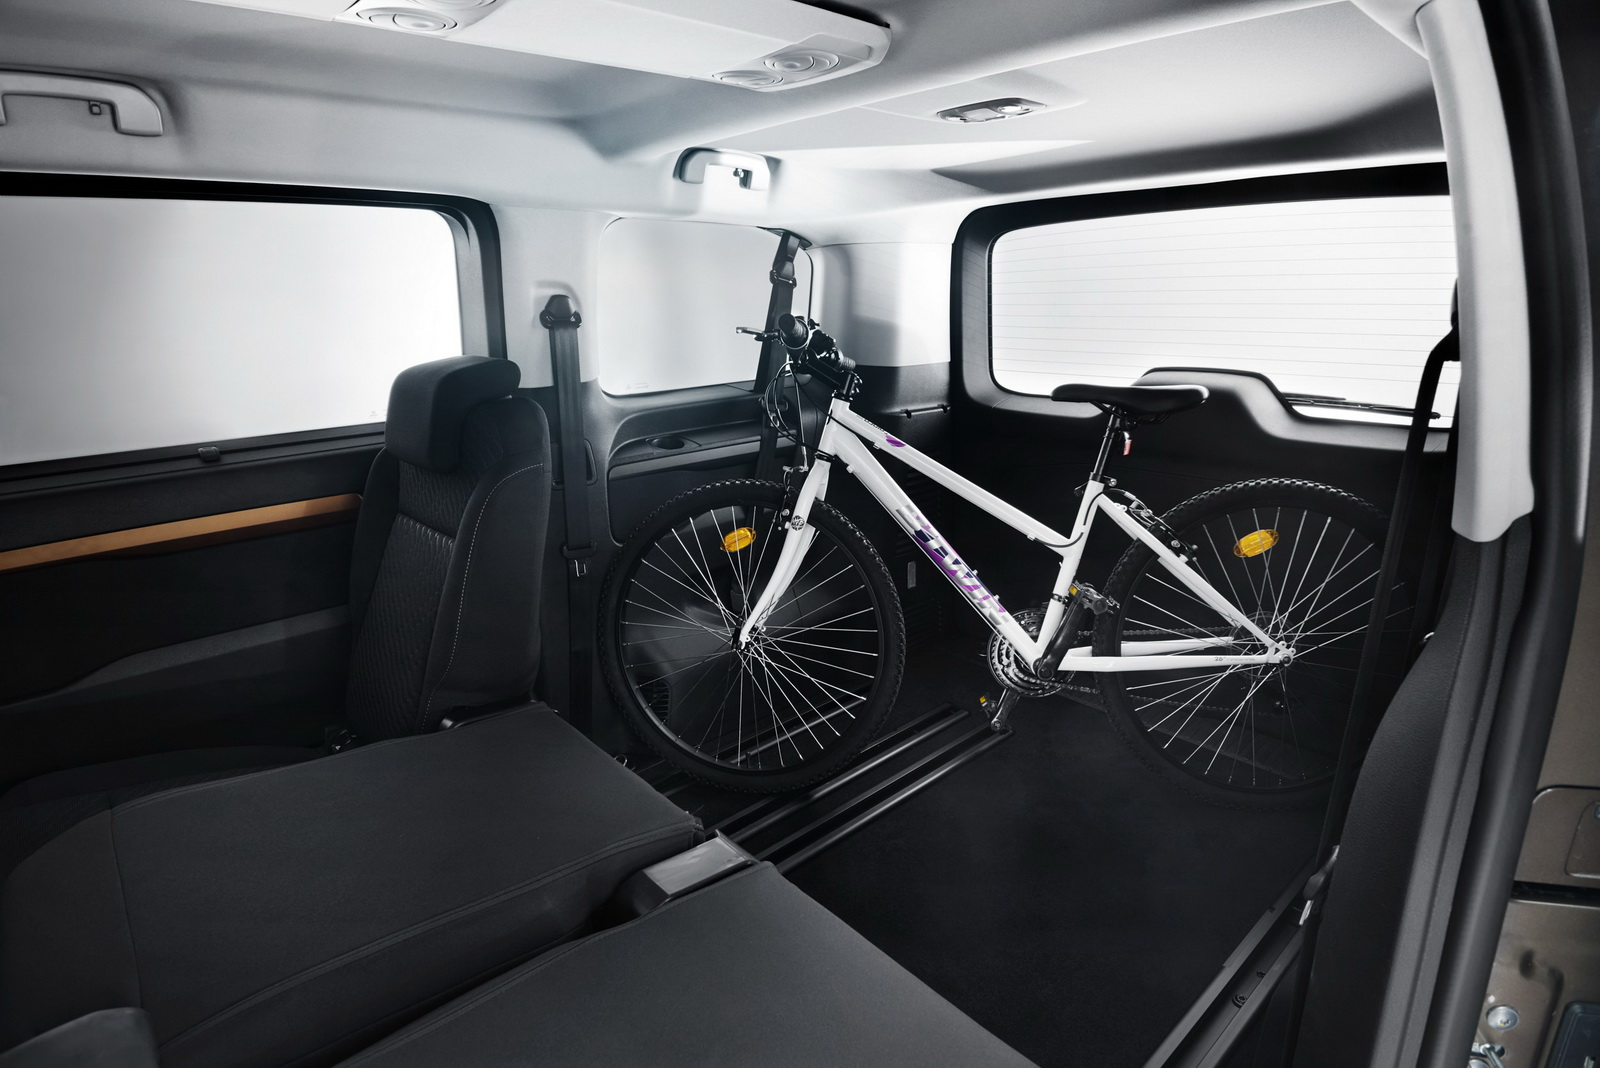 new toyota proace verso mpv detailed offers seating for up to nine w video carscoops. Black Bedroom Furniture Sets. Home Design Ideas